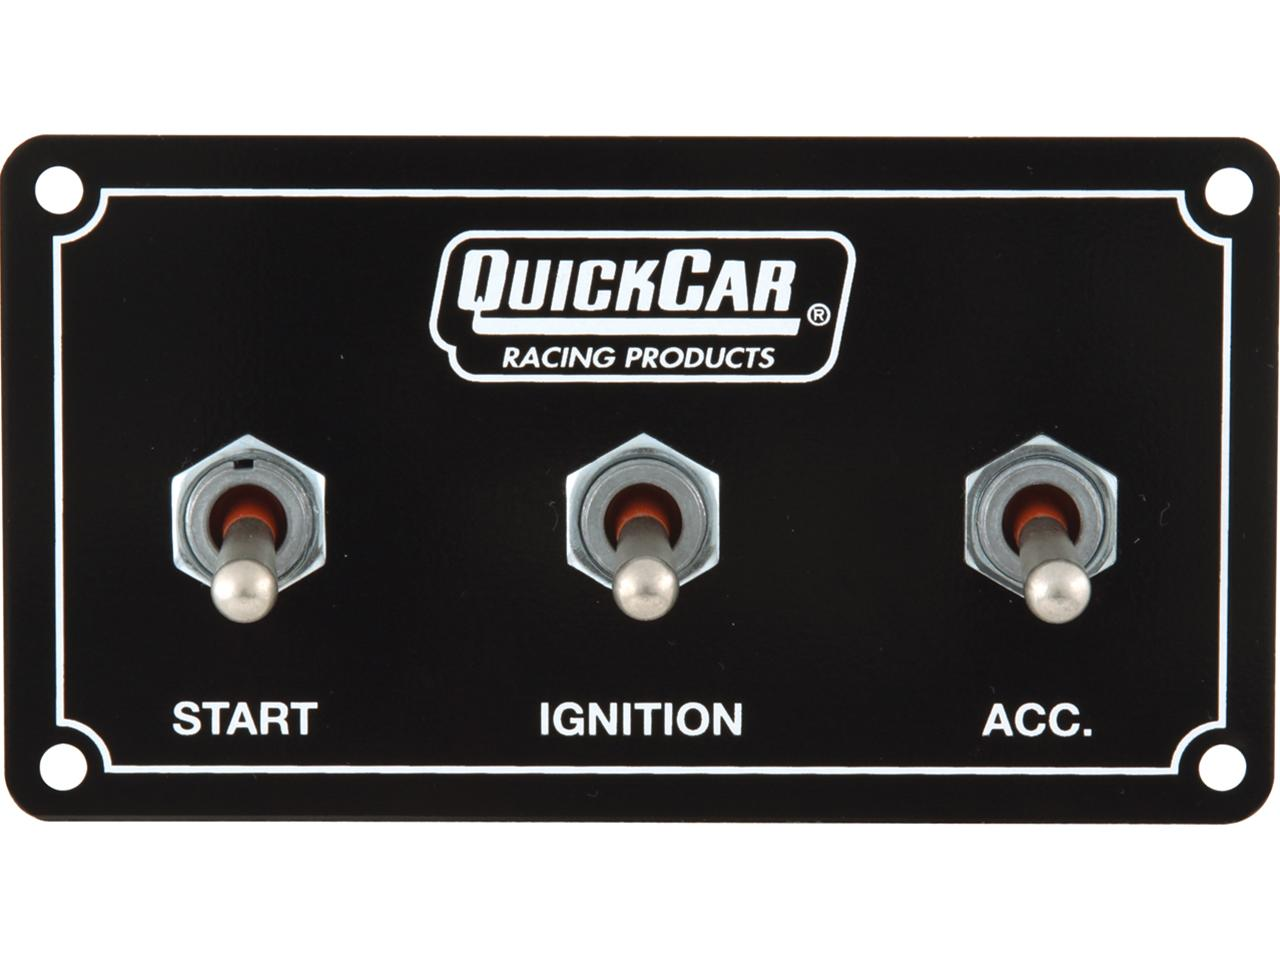 Quickcar Extreme Horizonal Ign Black Panel - 1 Acc Switch